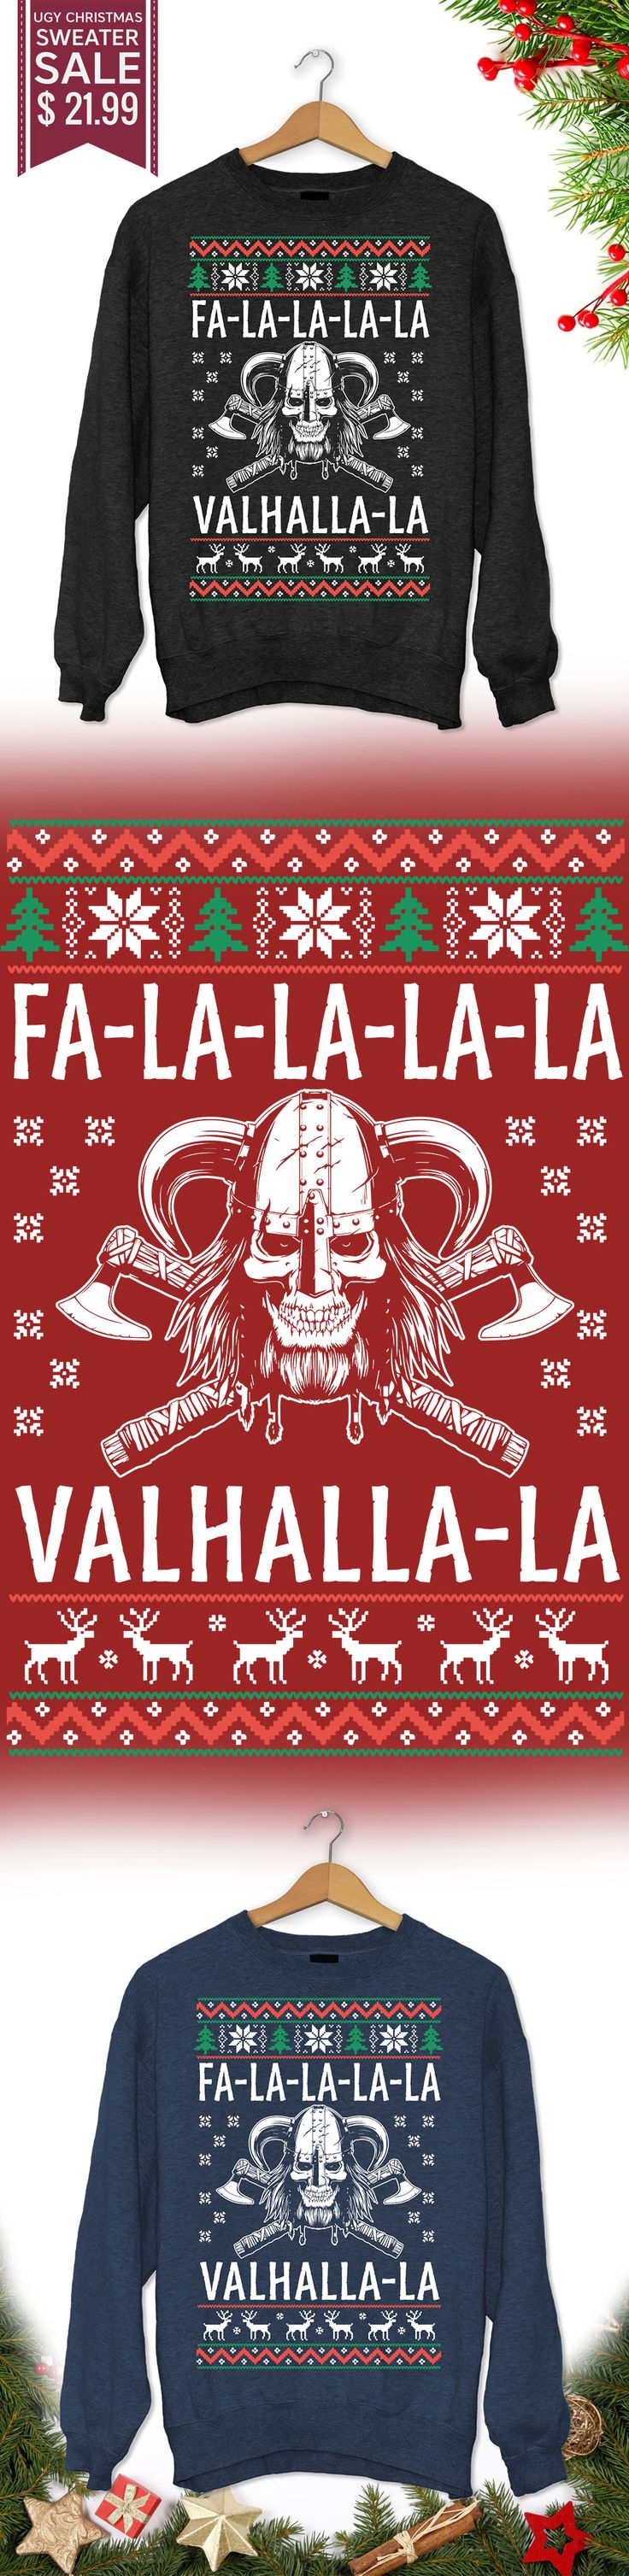 Christmas Gift Valhalla Sweater - Get this limited edition ugly Christmas Sweater just in time for the holidays! Buy 2 or more, save on shipping!